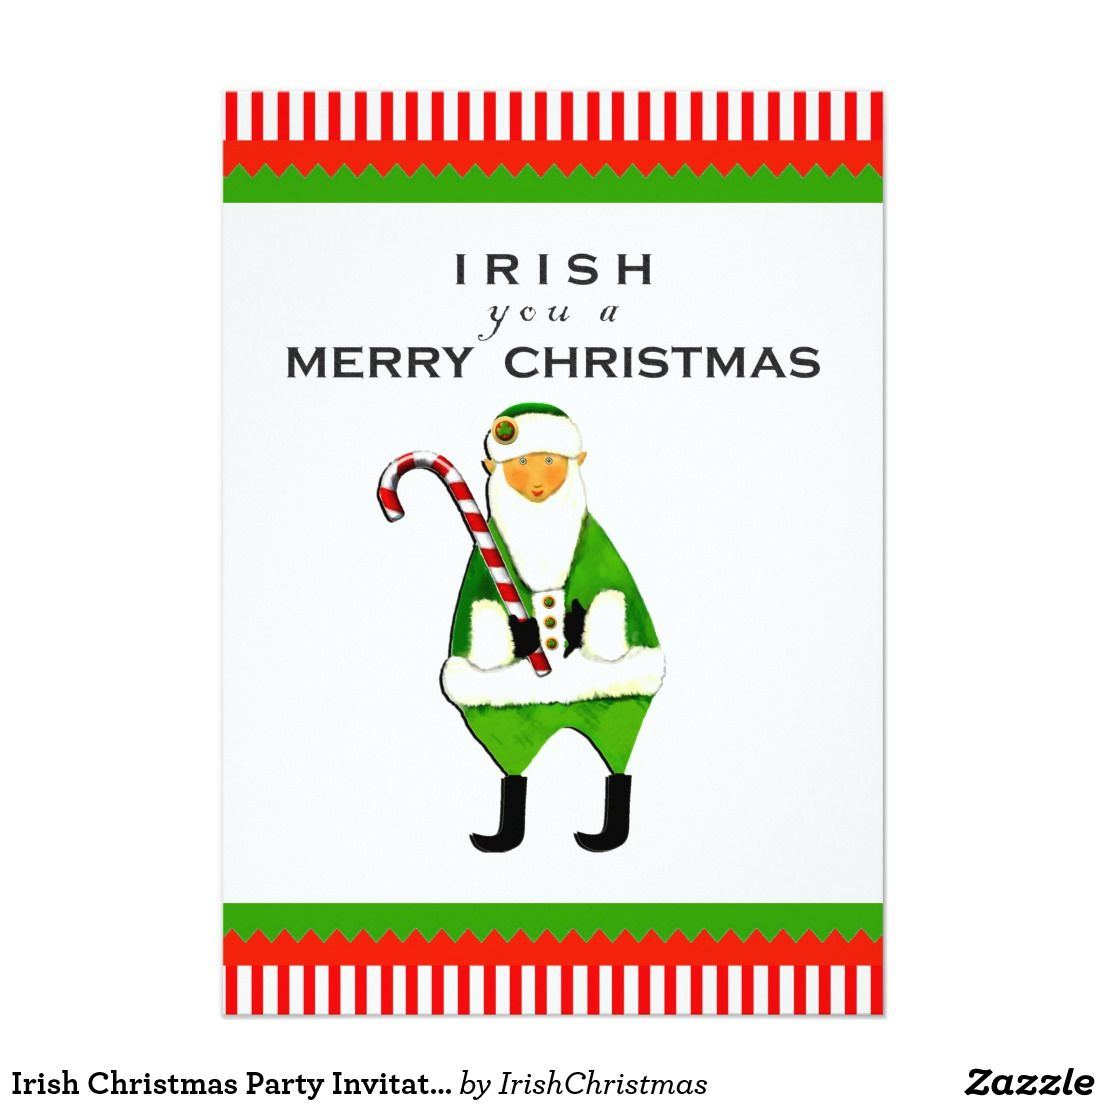 Irish Christmas Party Invitations | Christmas Party Invitations ...